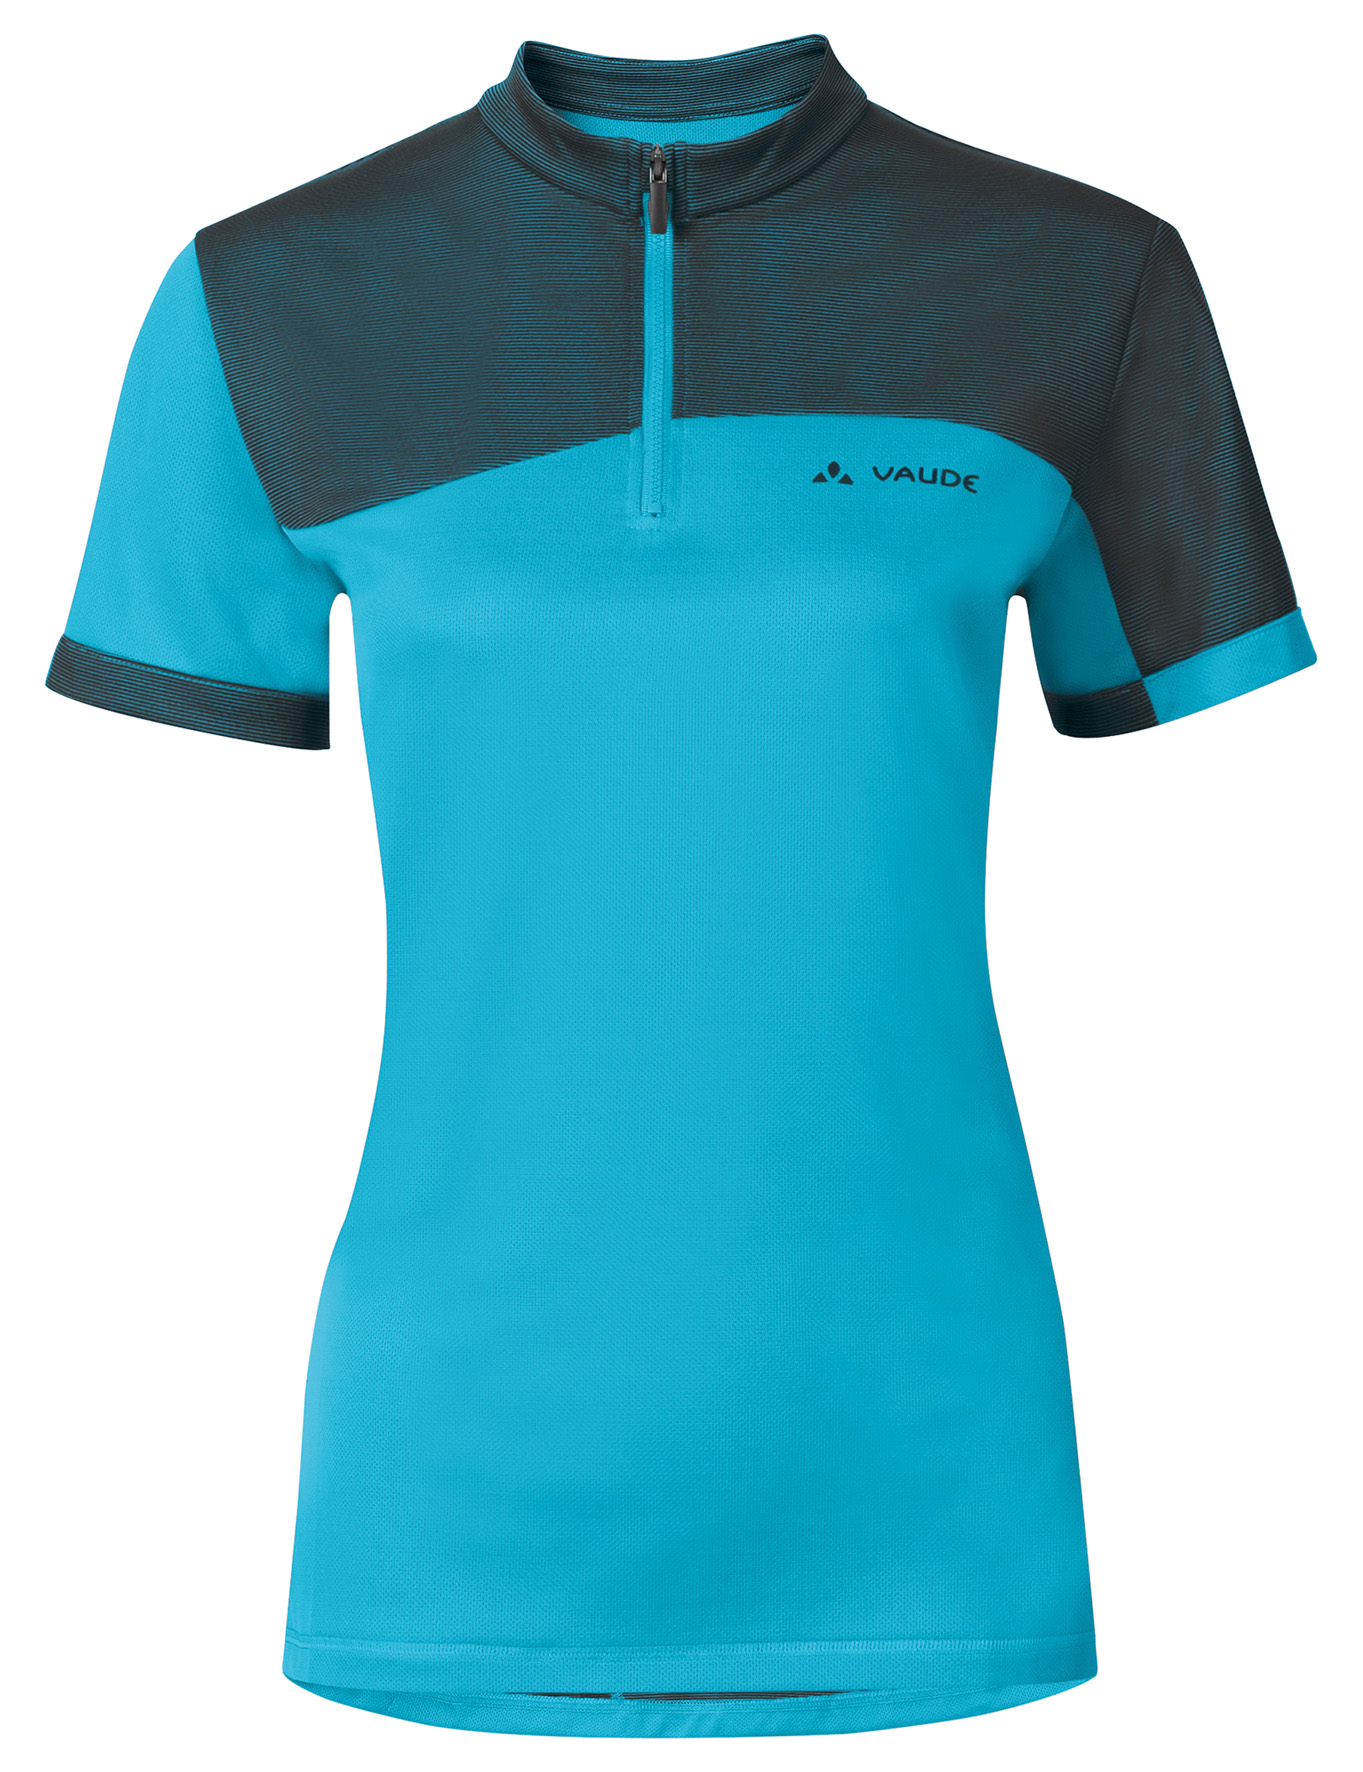 VAUDE Women´s Tremalzo Shirt II polar sea Größe 36 - schneider-sports